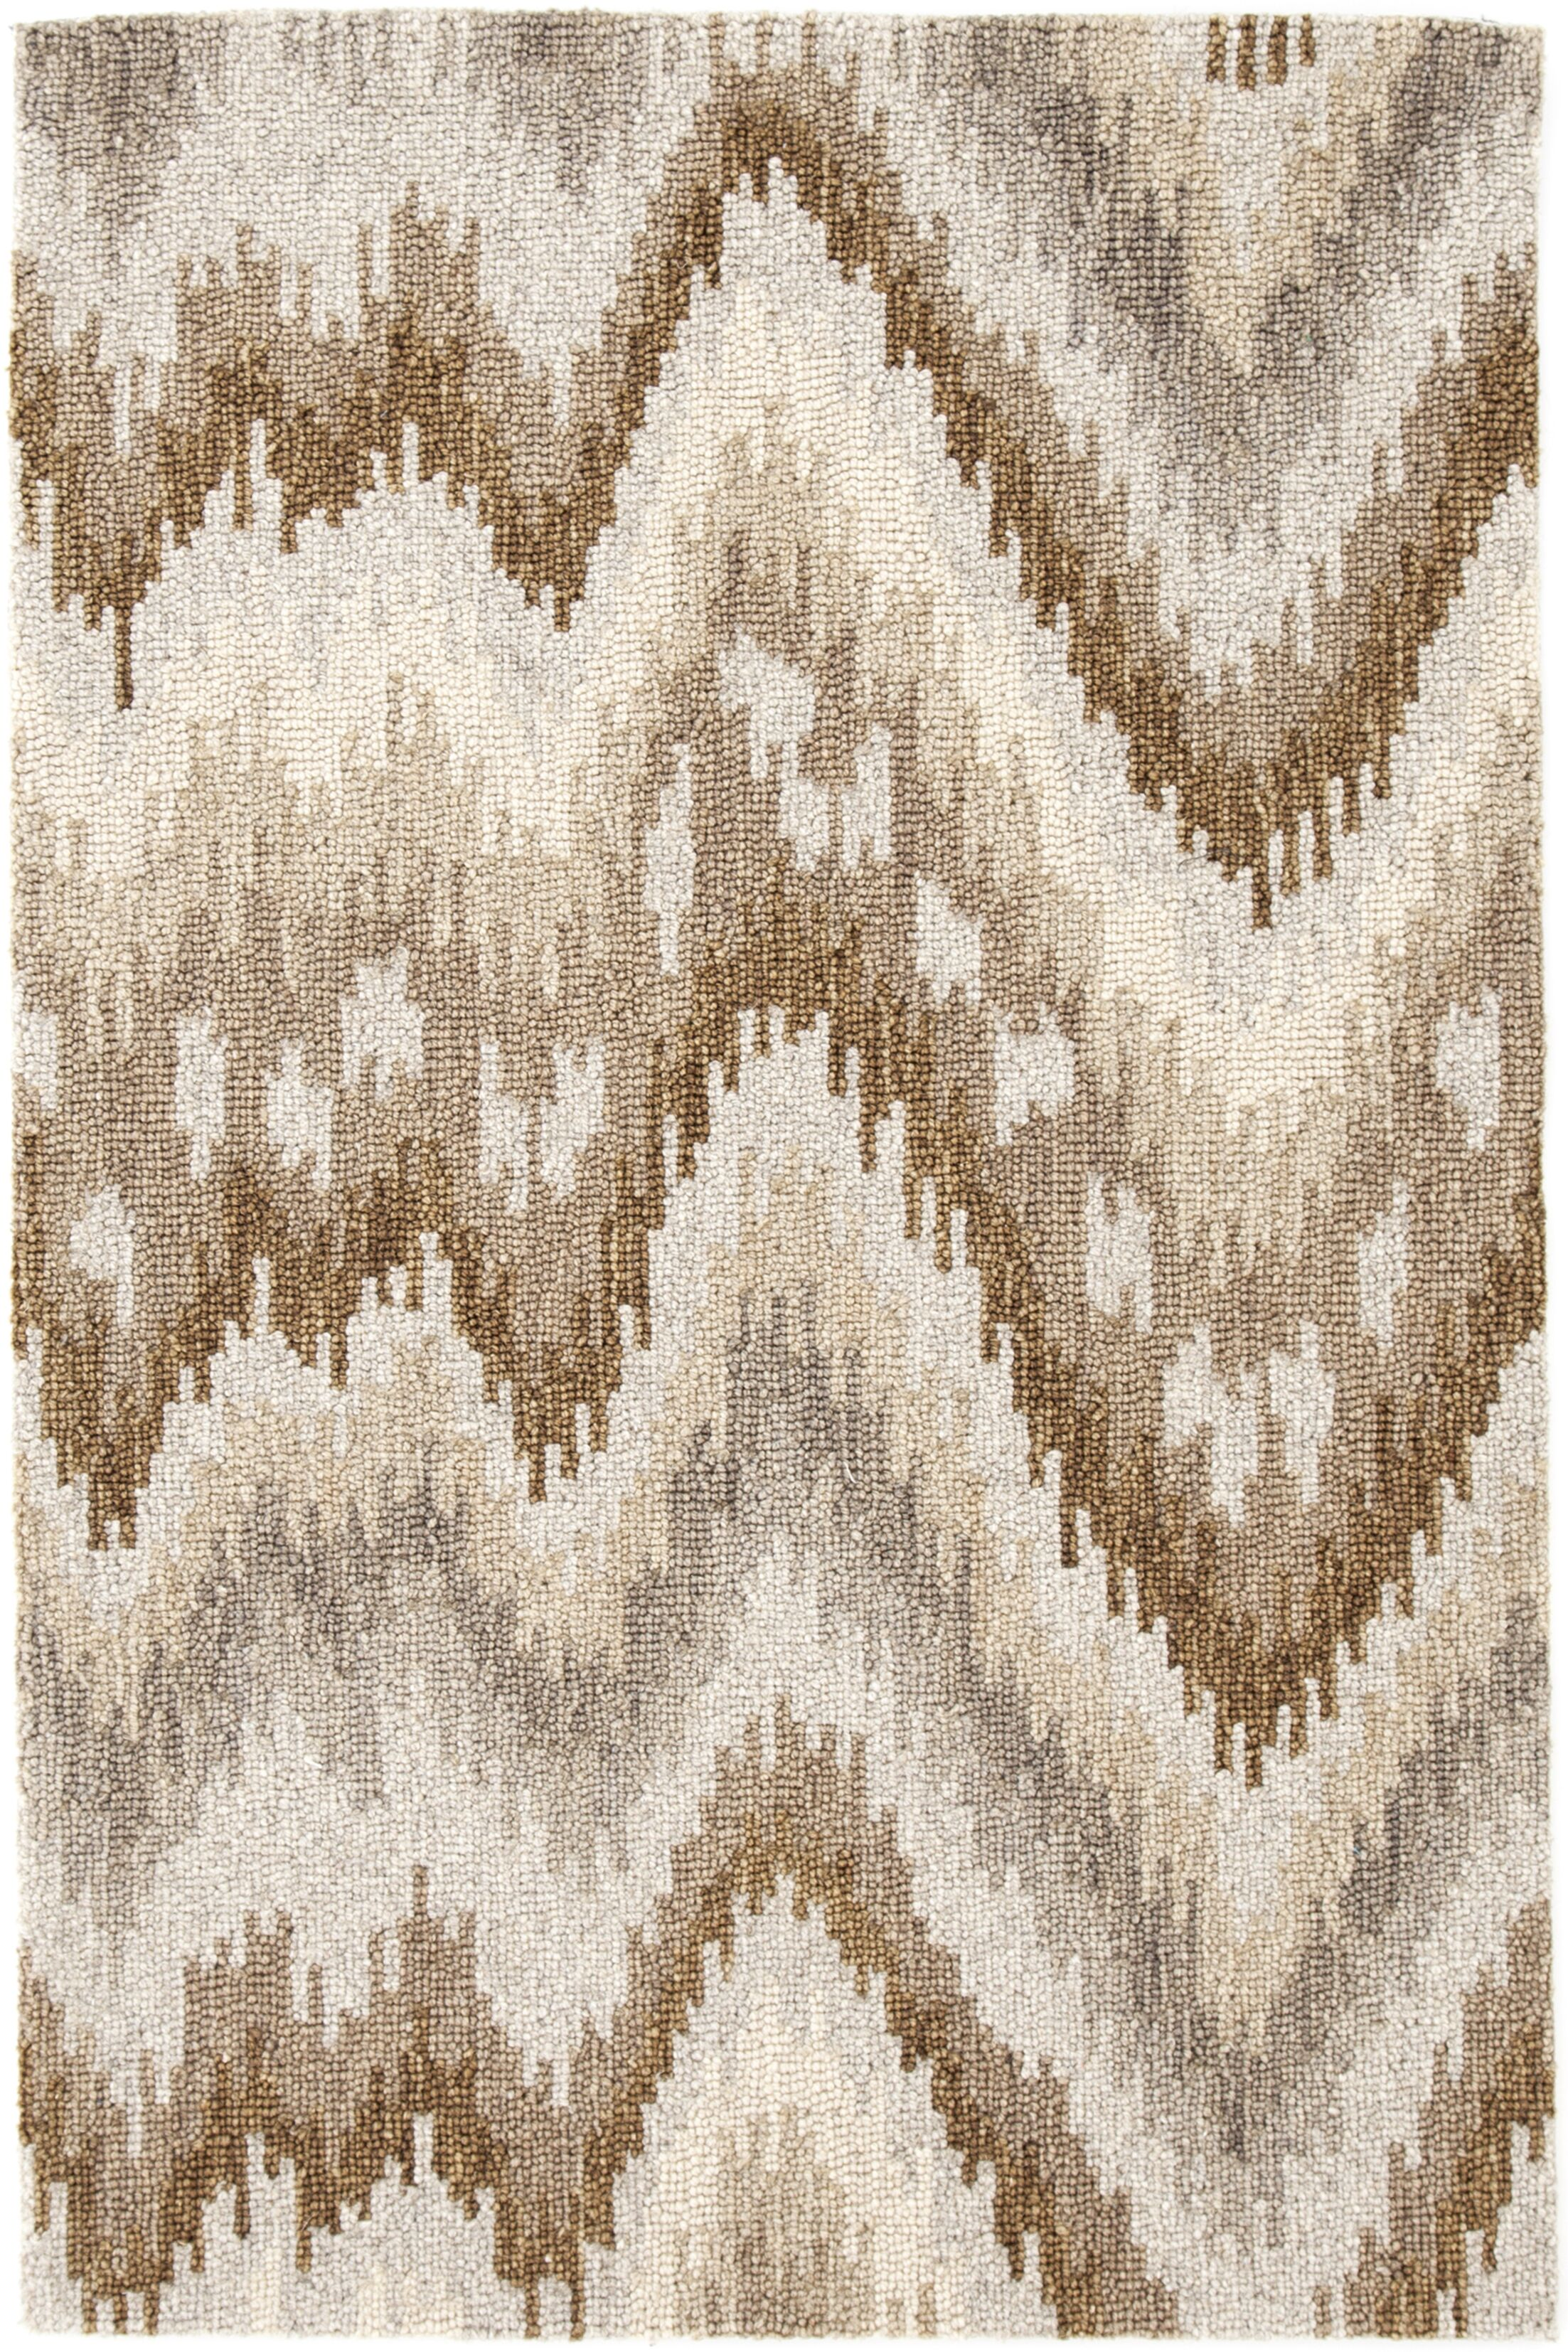 Hooked Beige Area Rug Rug Size: Rectangle 8' x 10'